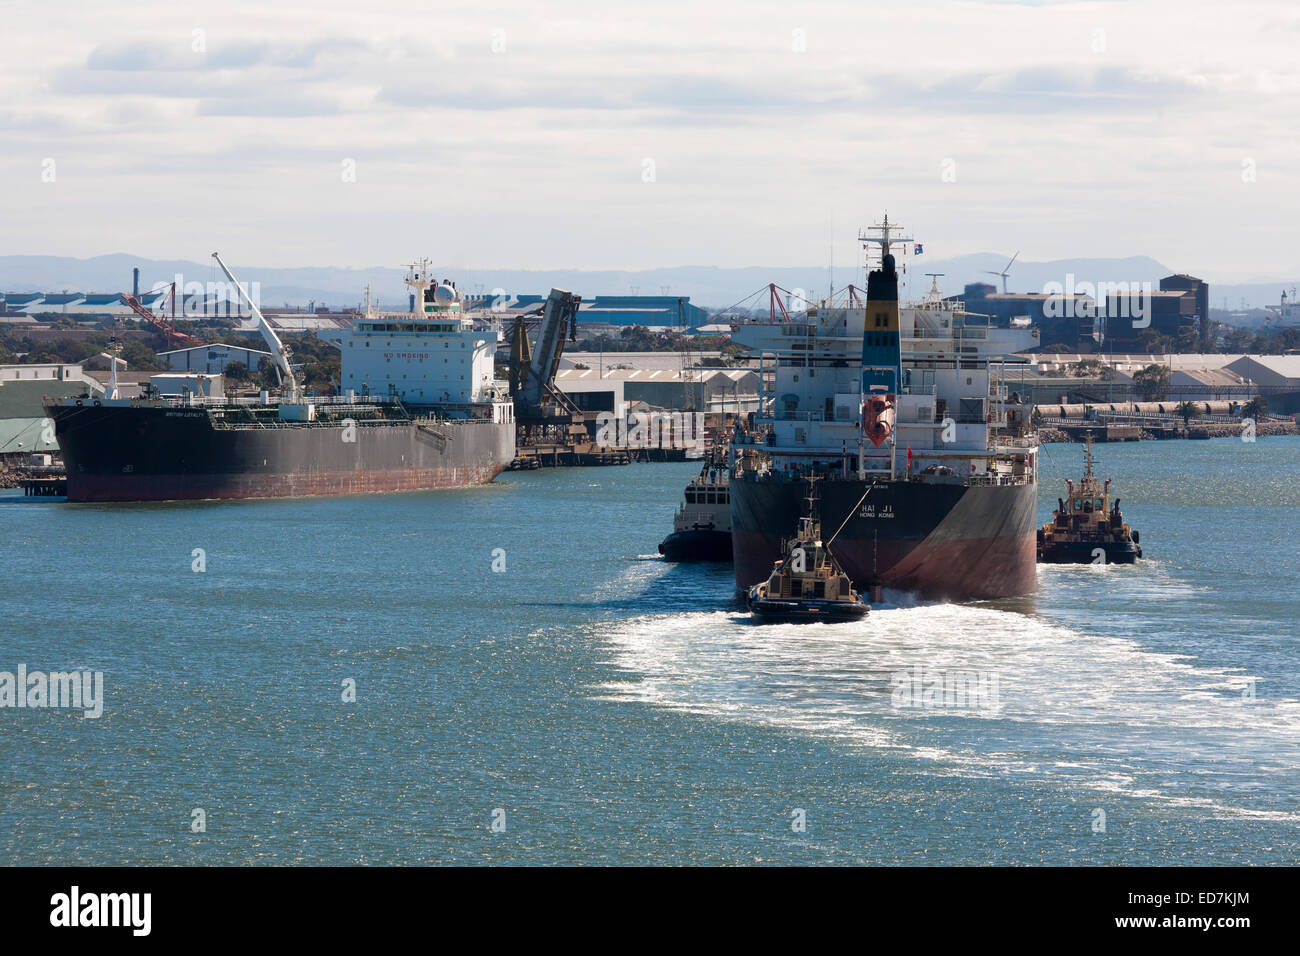 Bulkcarrier vessel arriving to load coal from the mines of the Hunter Valley Newcastle NSW Australia - Stock Image